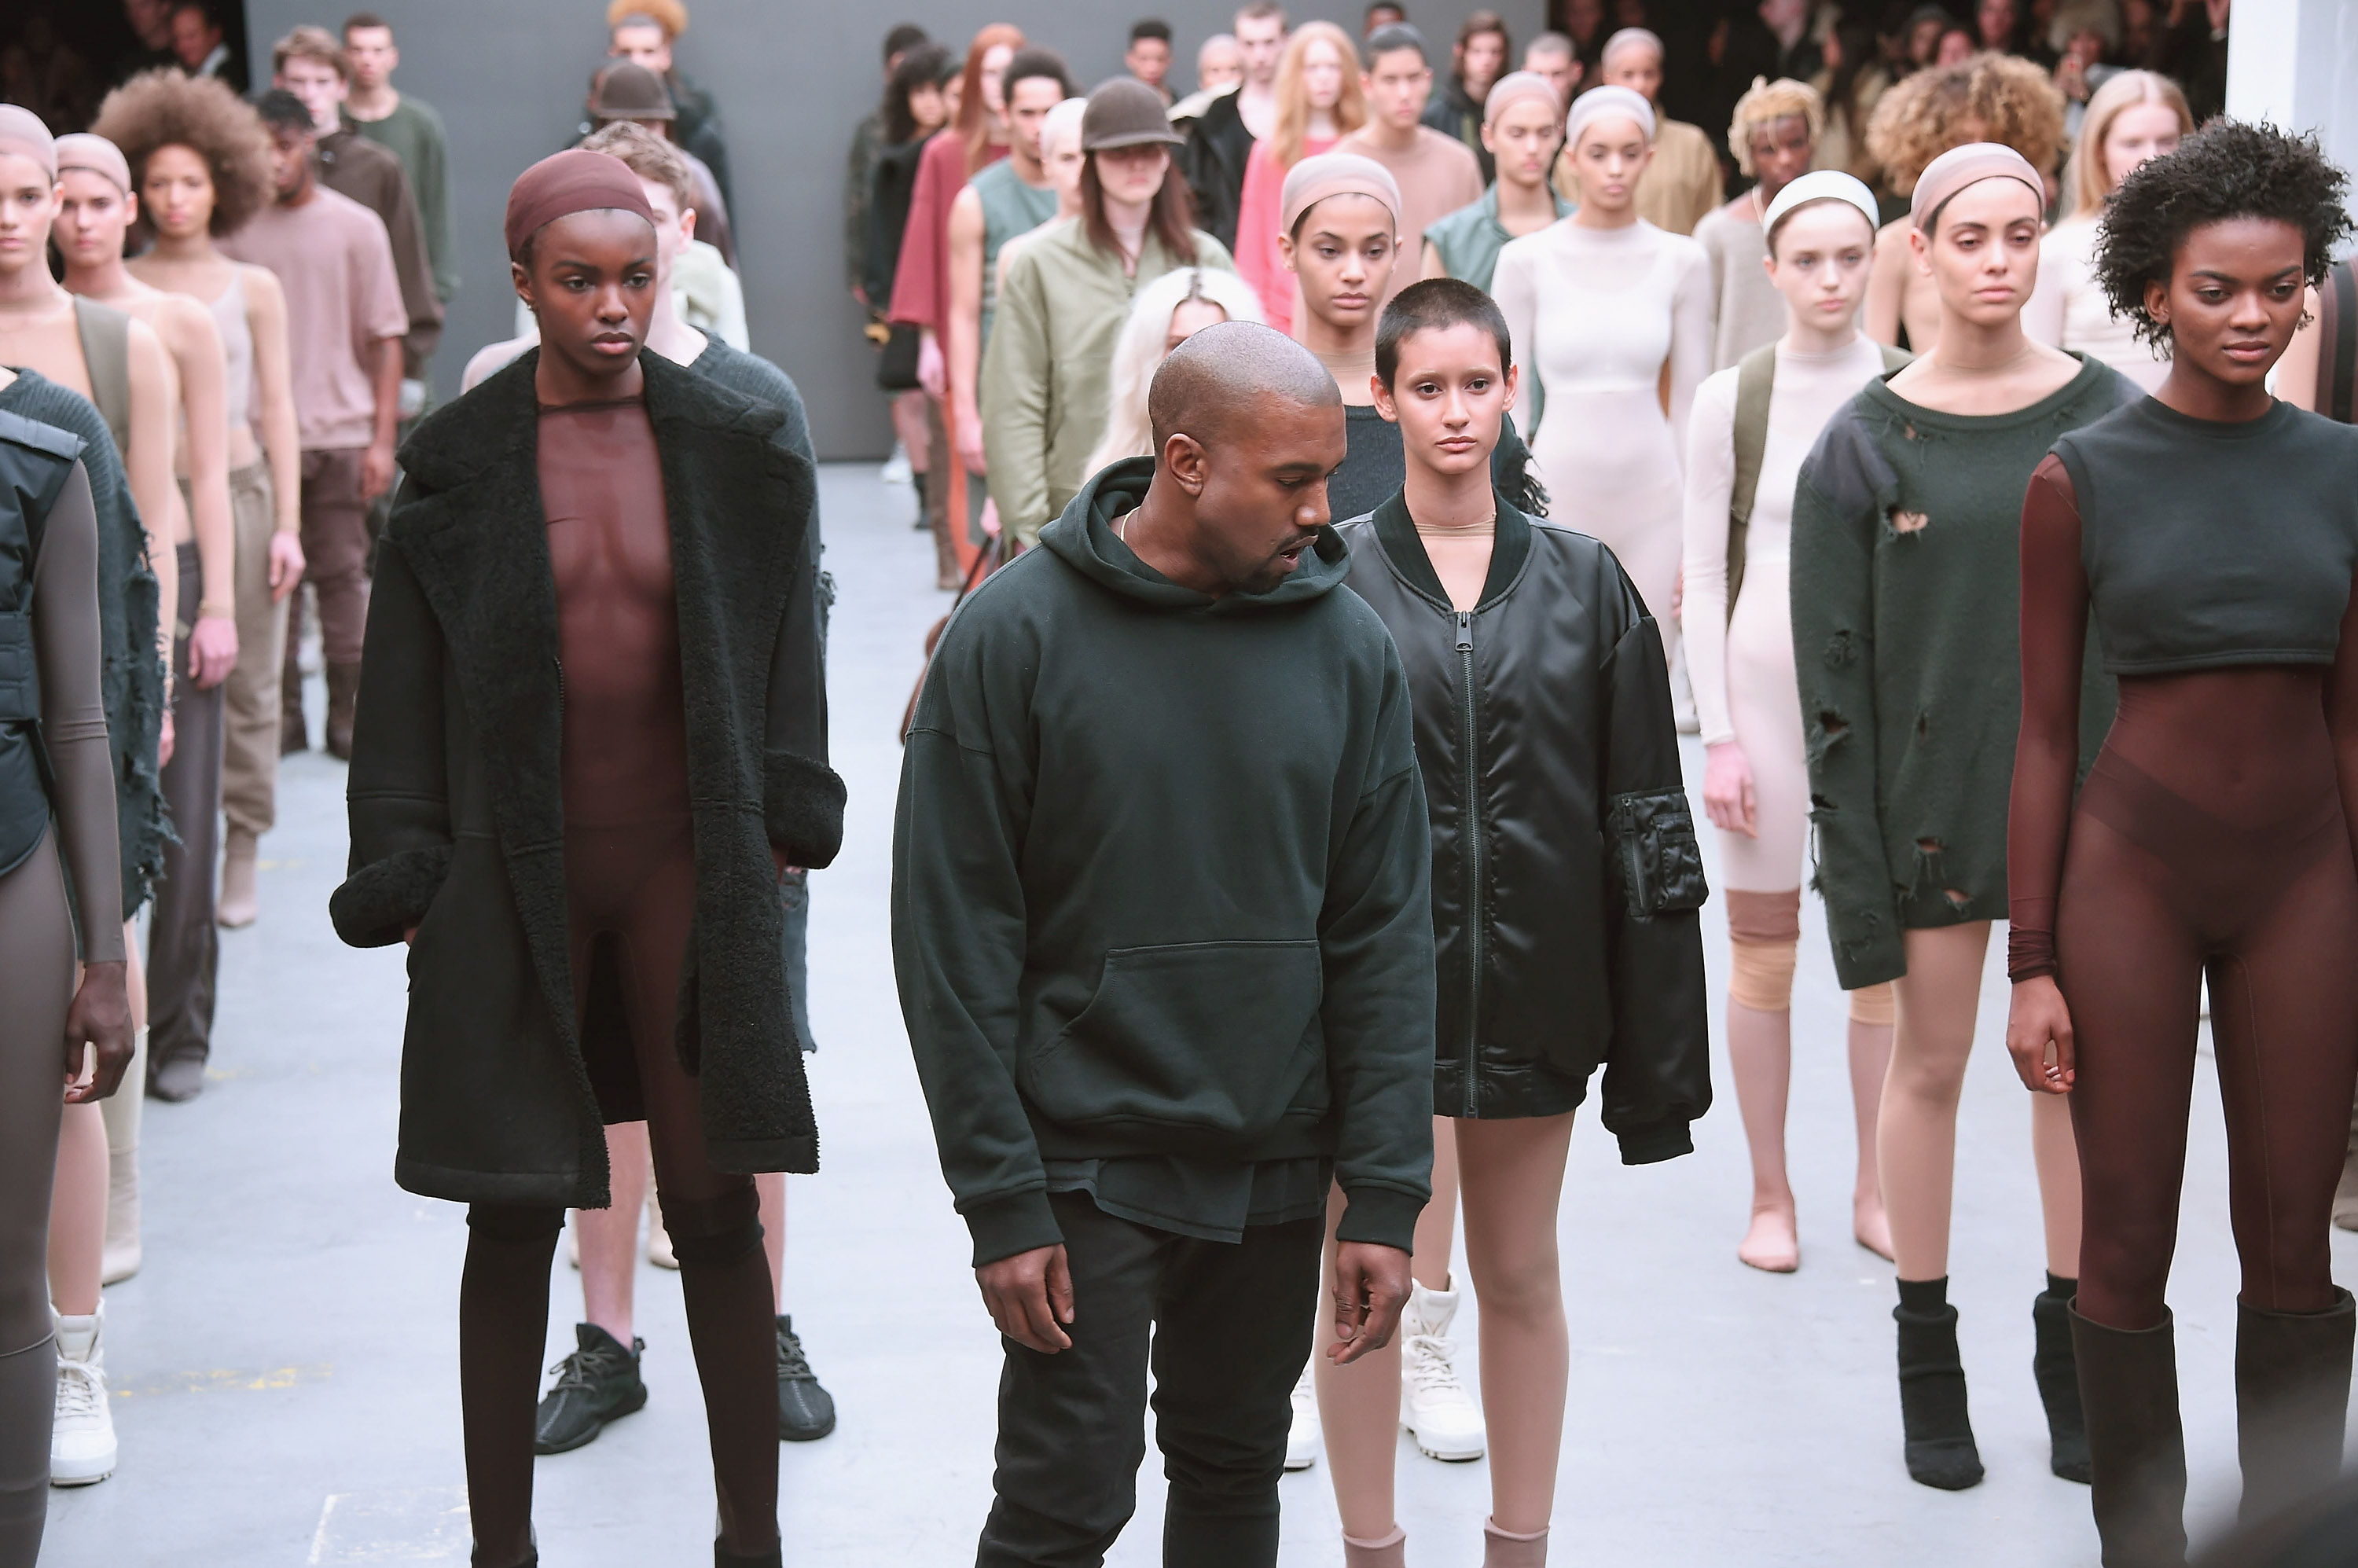 Kanye West attends the Adidas show during Mercedes-Benz Fashion Week Fall 2015 at Skylight Clarkson SQ. on Feb. 12, 2015 in New York City.